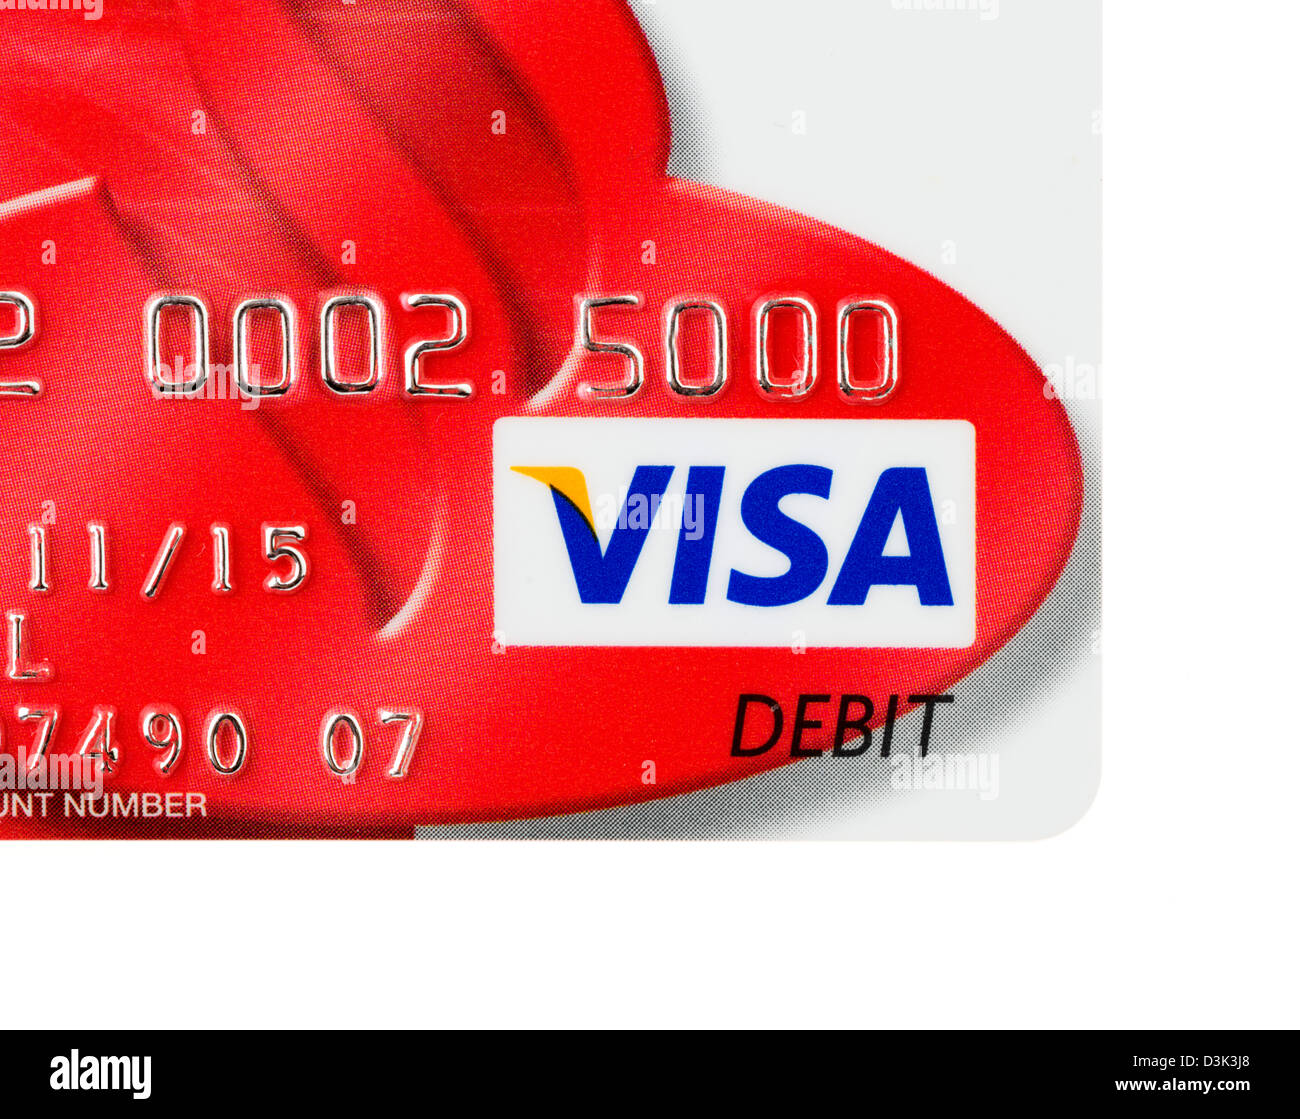 VISA debit card issued in the UK - Stock Image